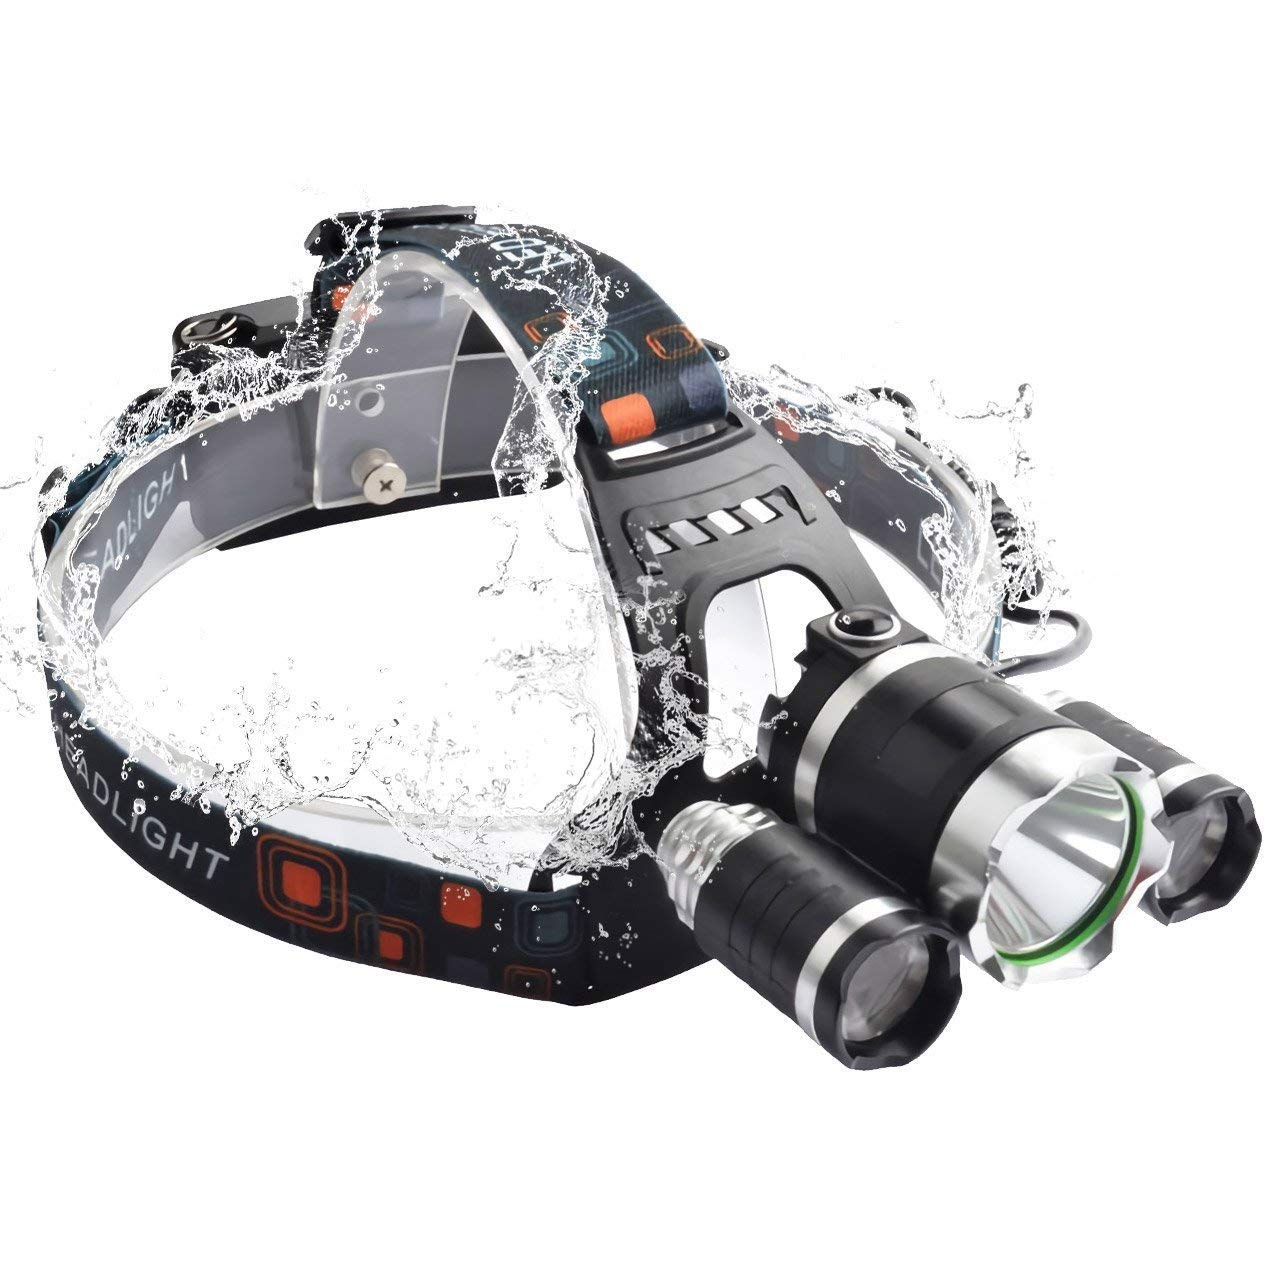 Super Bright LED Headlamp 4 switch modes Waterproof Flashlight Headlight with charger for Camping Riding Reading Rainy Weather Head-mounted Light(with battery& charger)